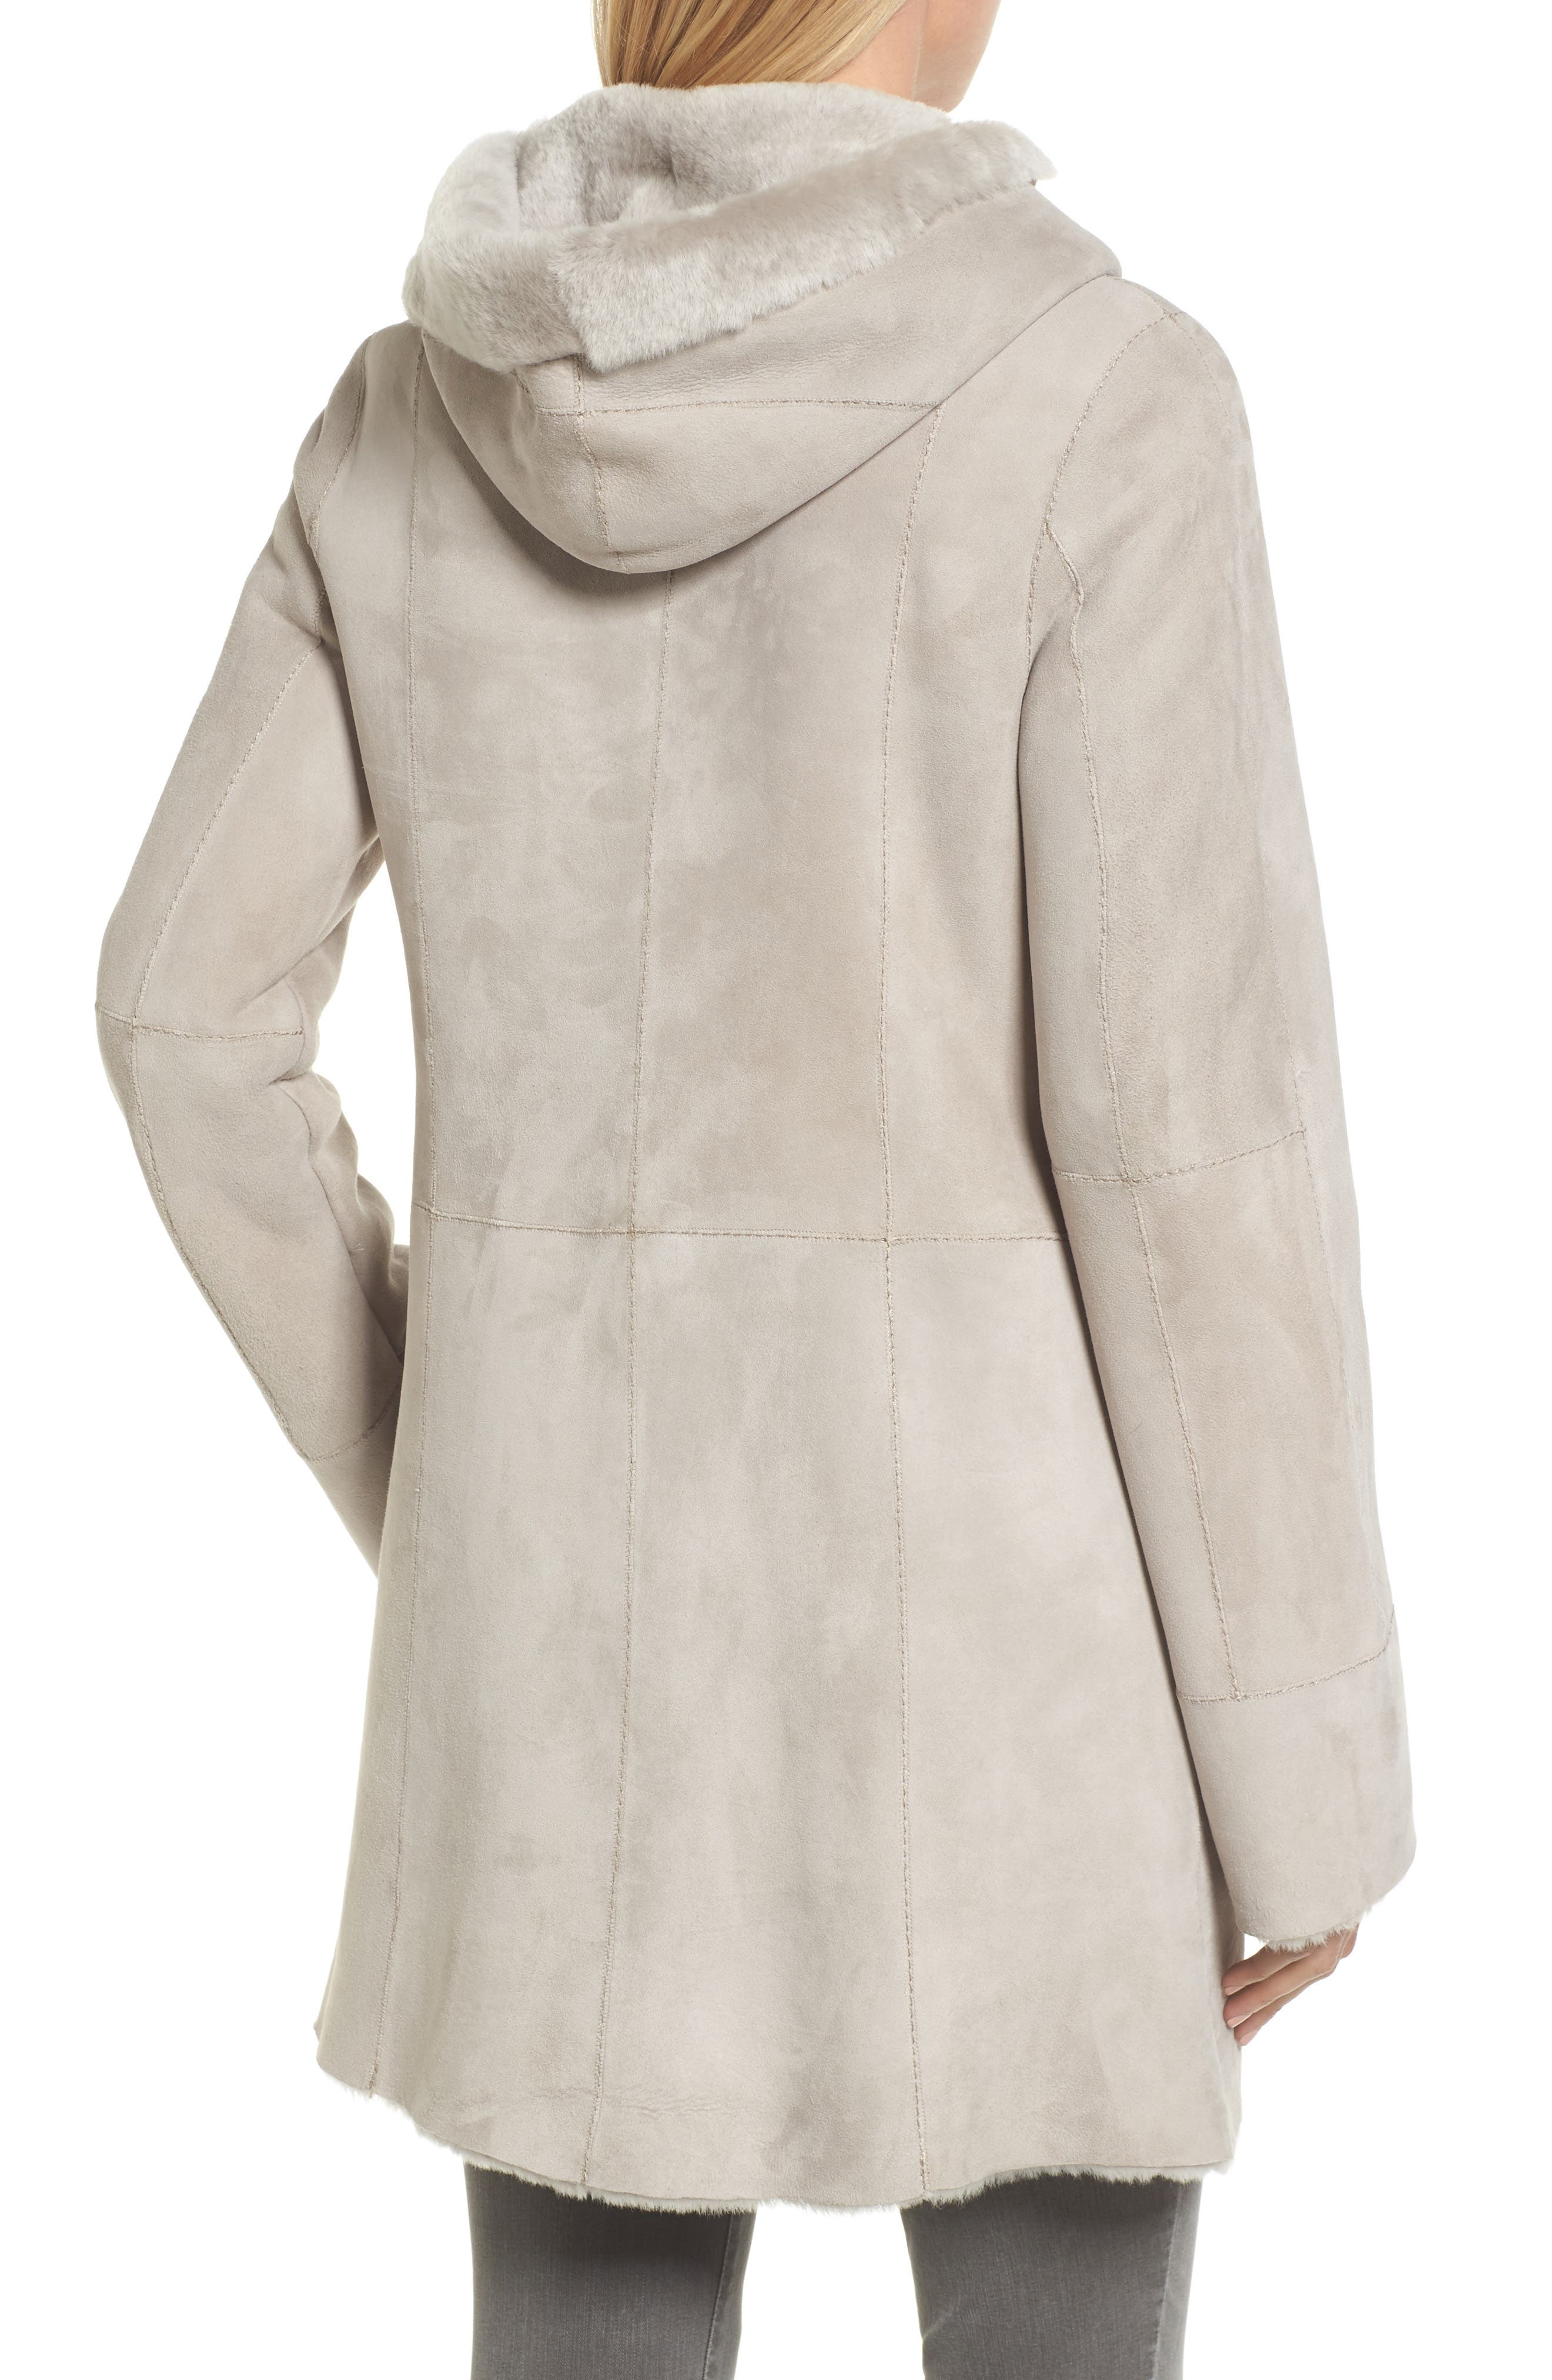 Patch Genuine Shearling Coat,                             Alternate thumbnail 2, color,                             050